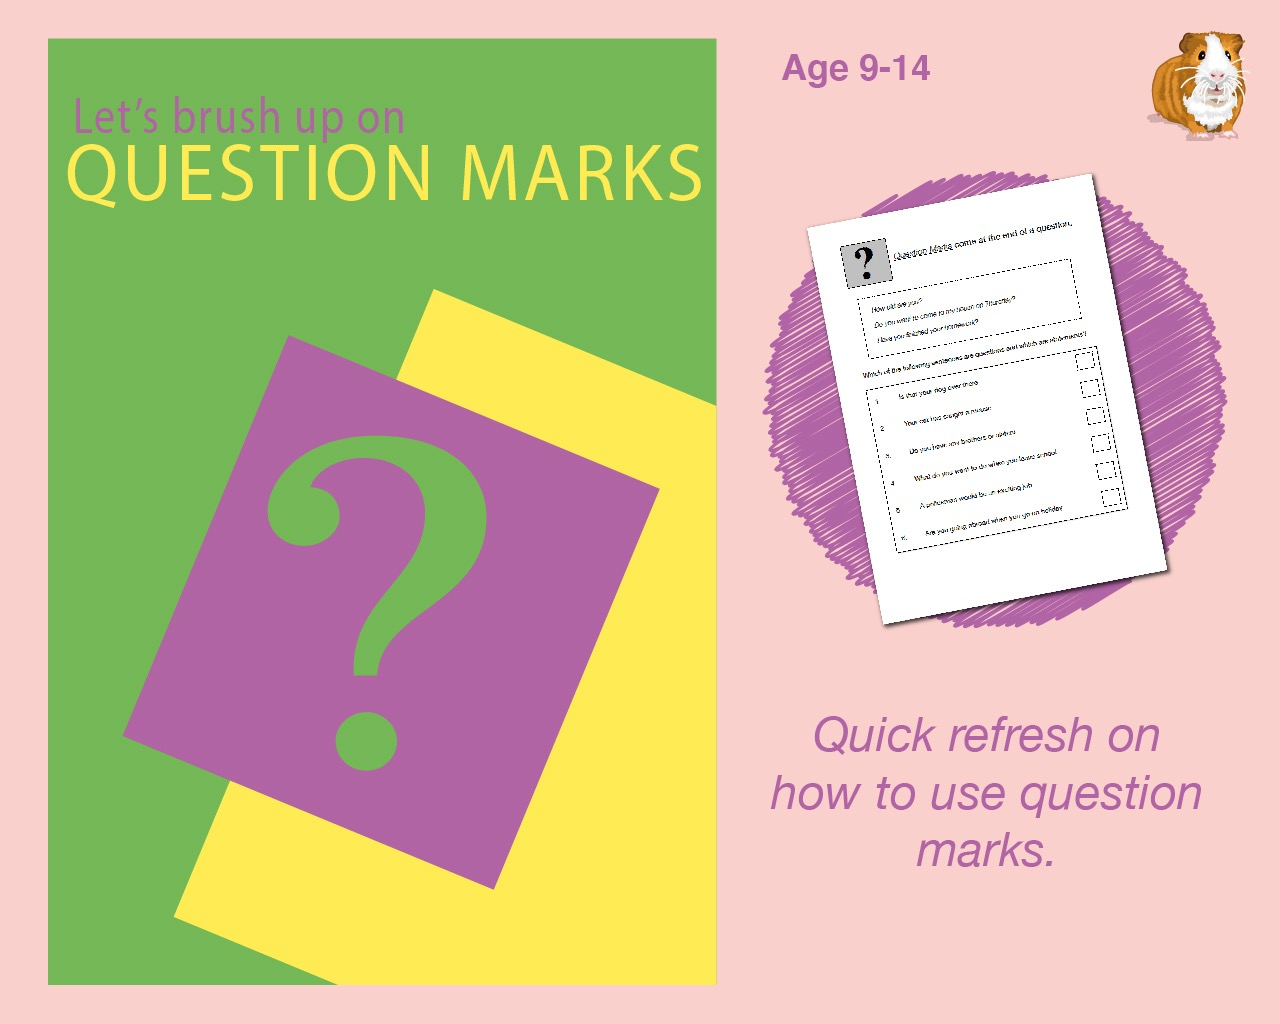 Brush Up On Using Question Marks (9-14 years)